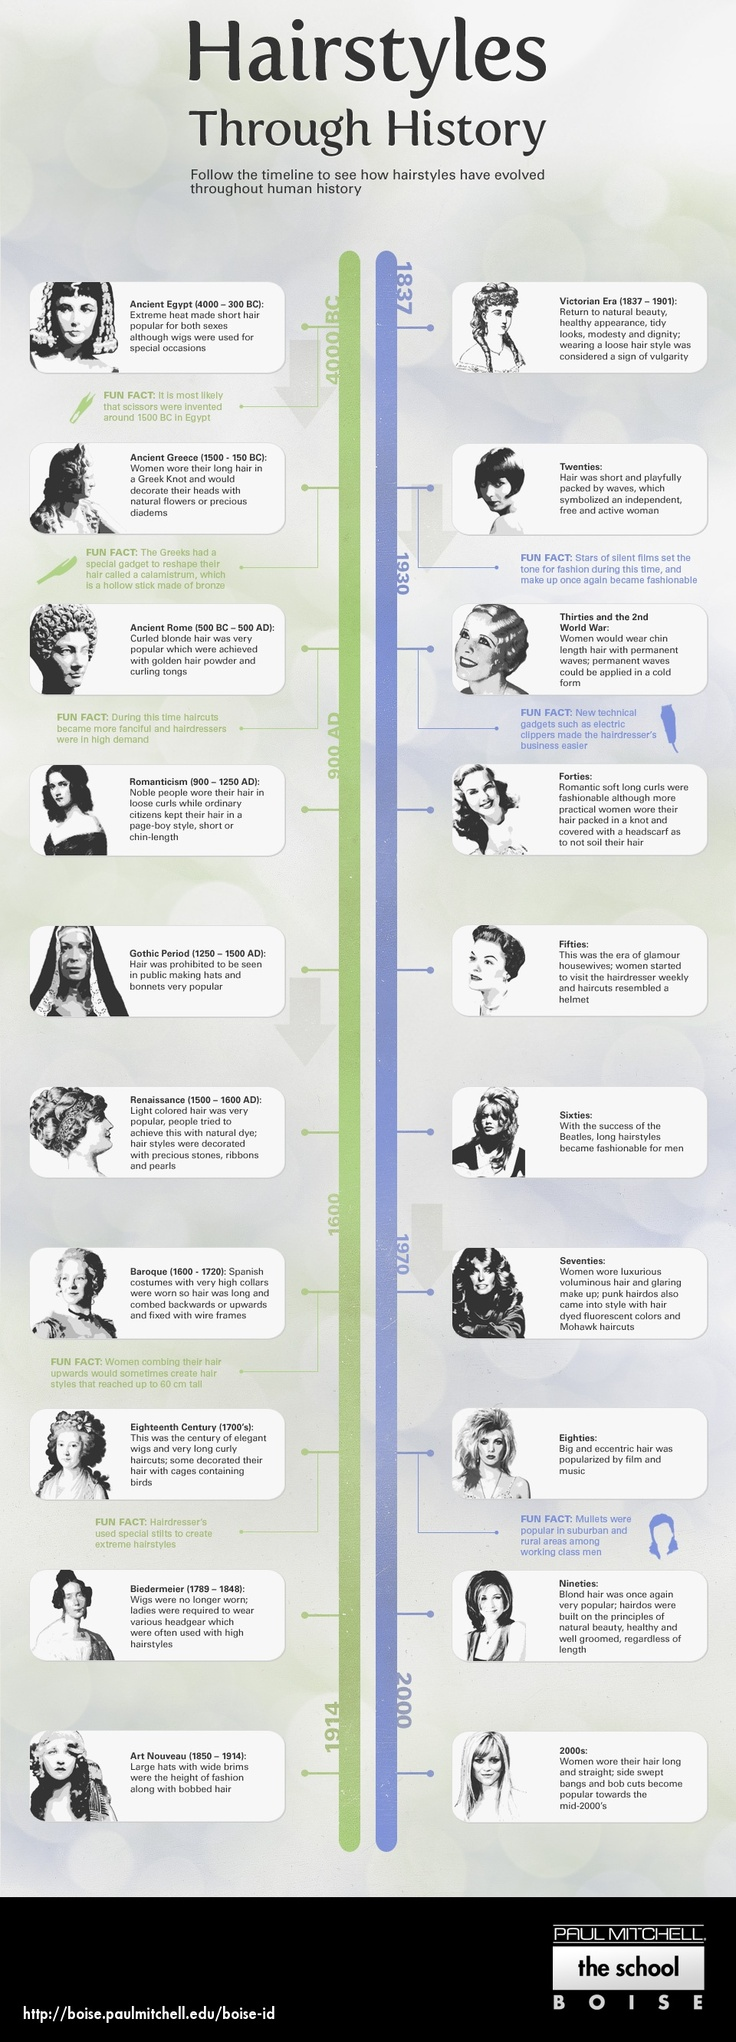 feather cut hairstyle : Cosmetology Hairstyles Through History Infographic Paul Mitchell ...